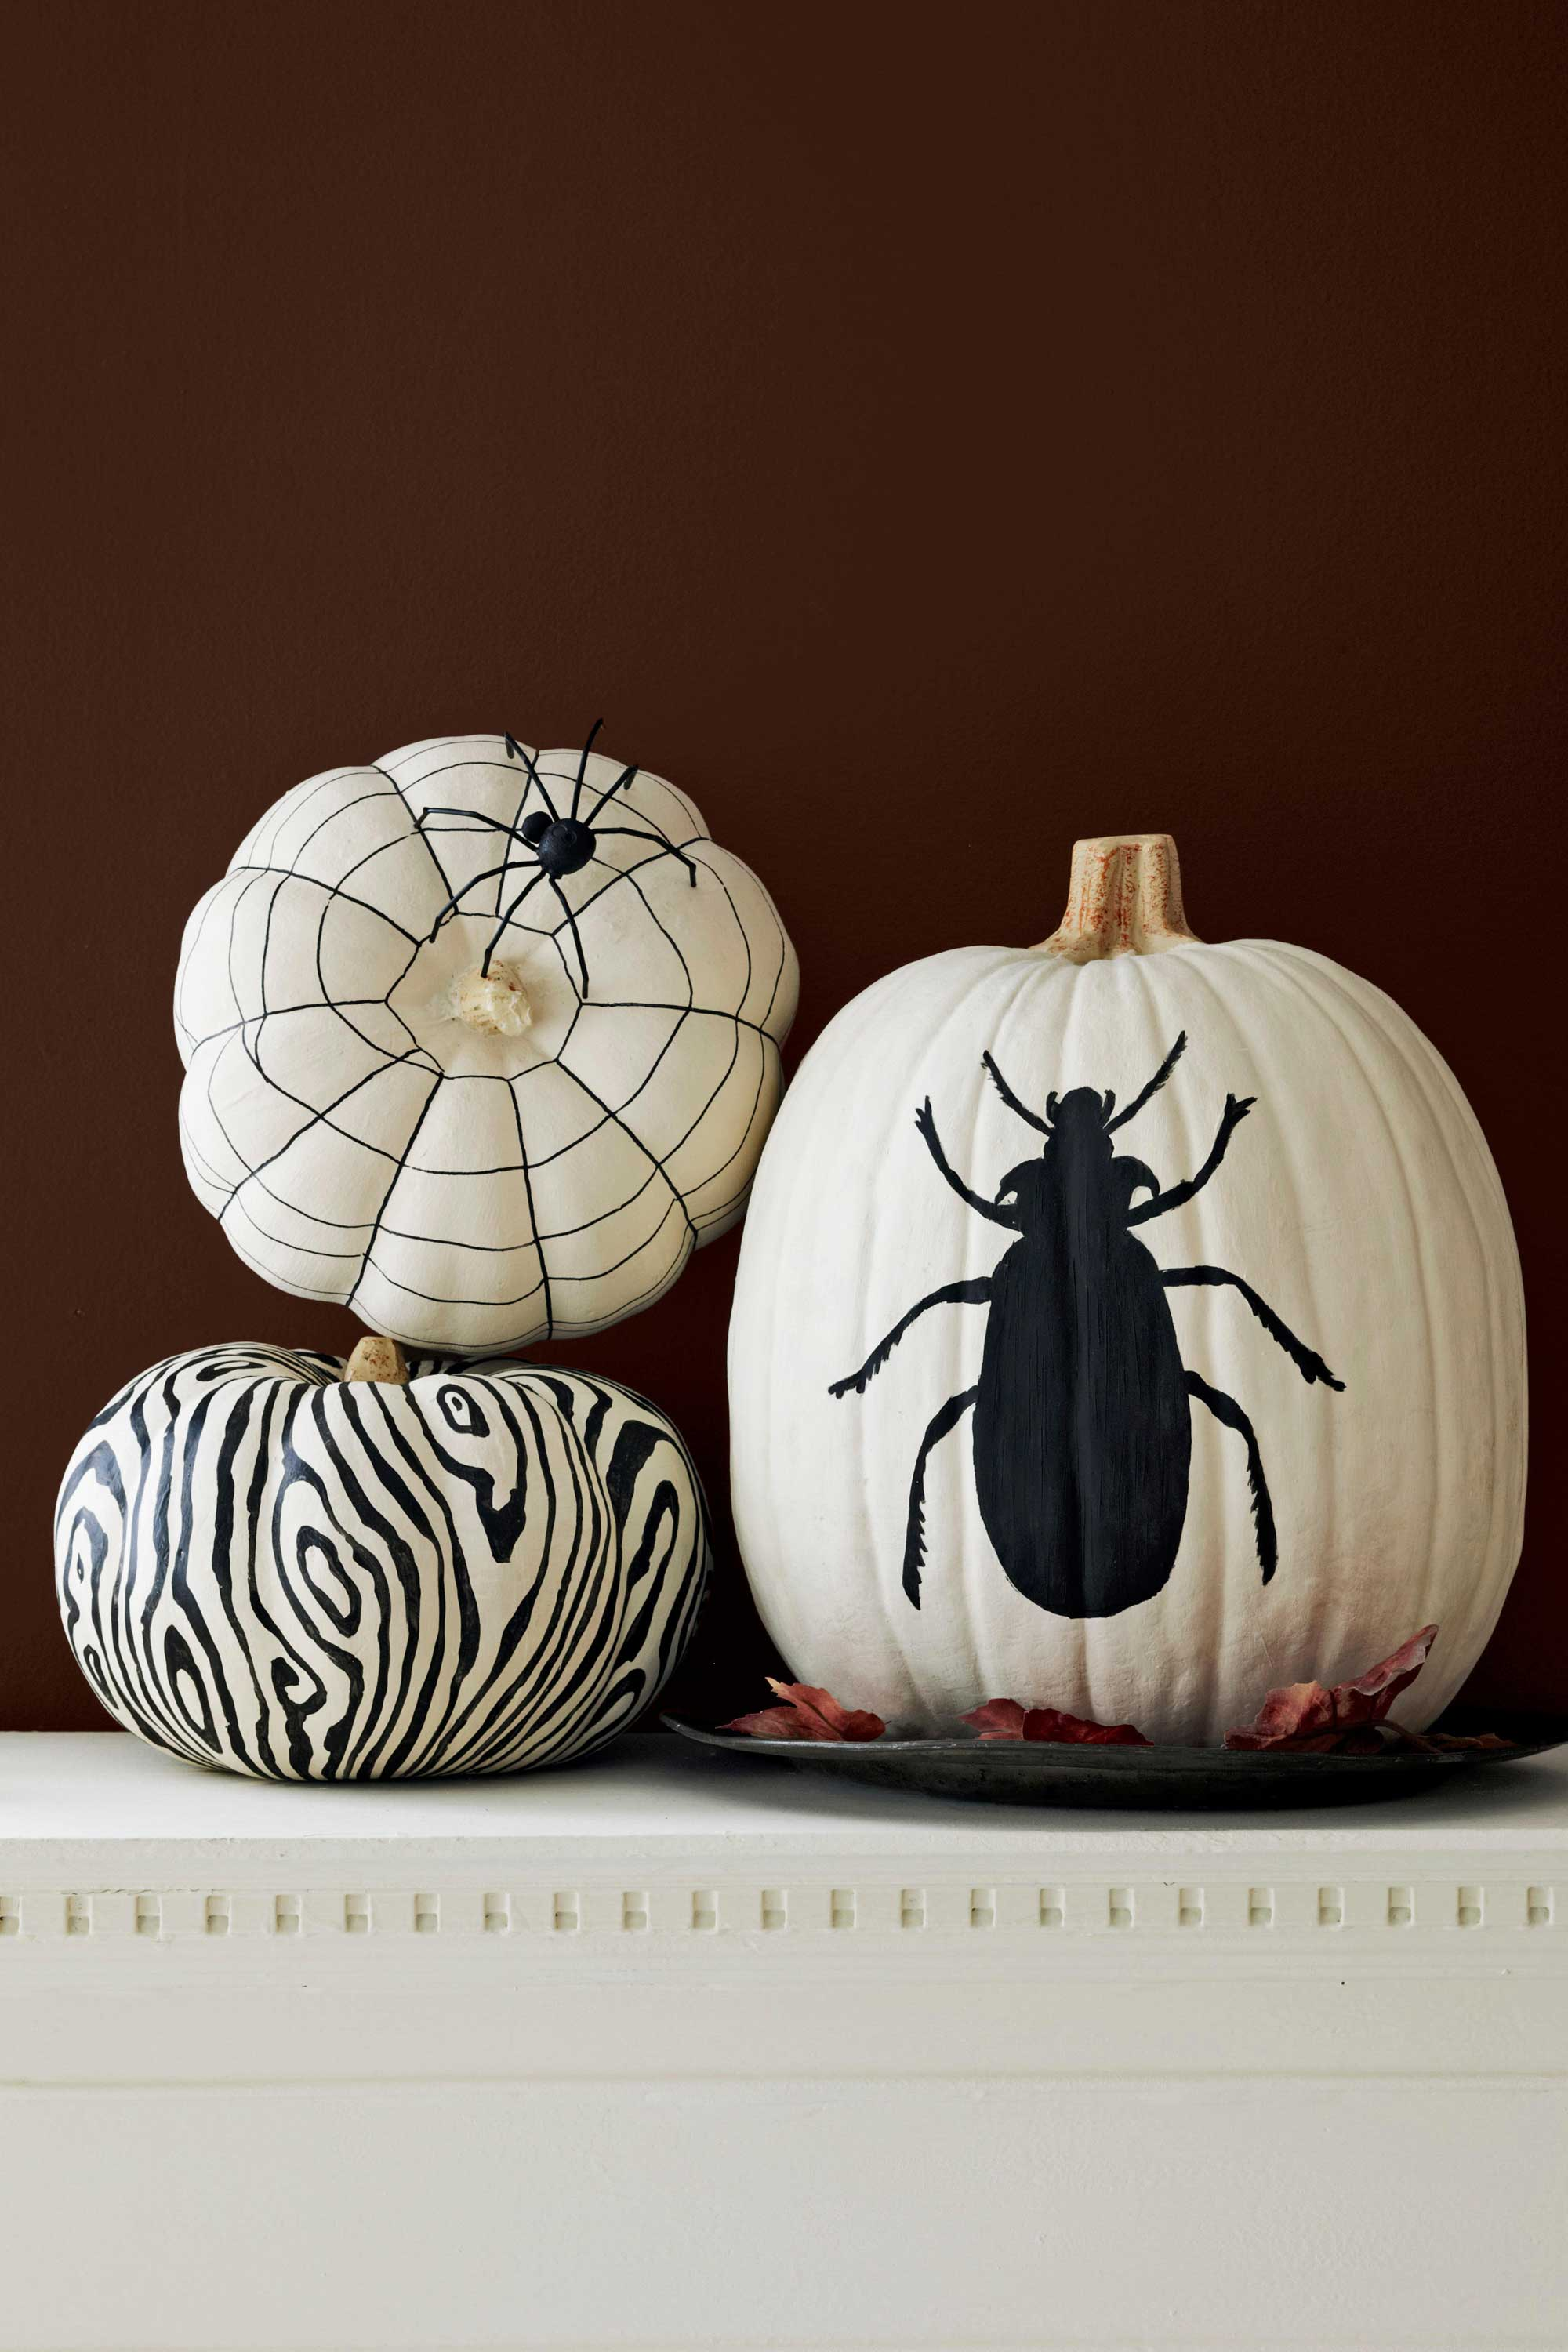 66 easy halloween craft ideas halloween diy craft projects for